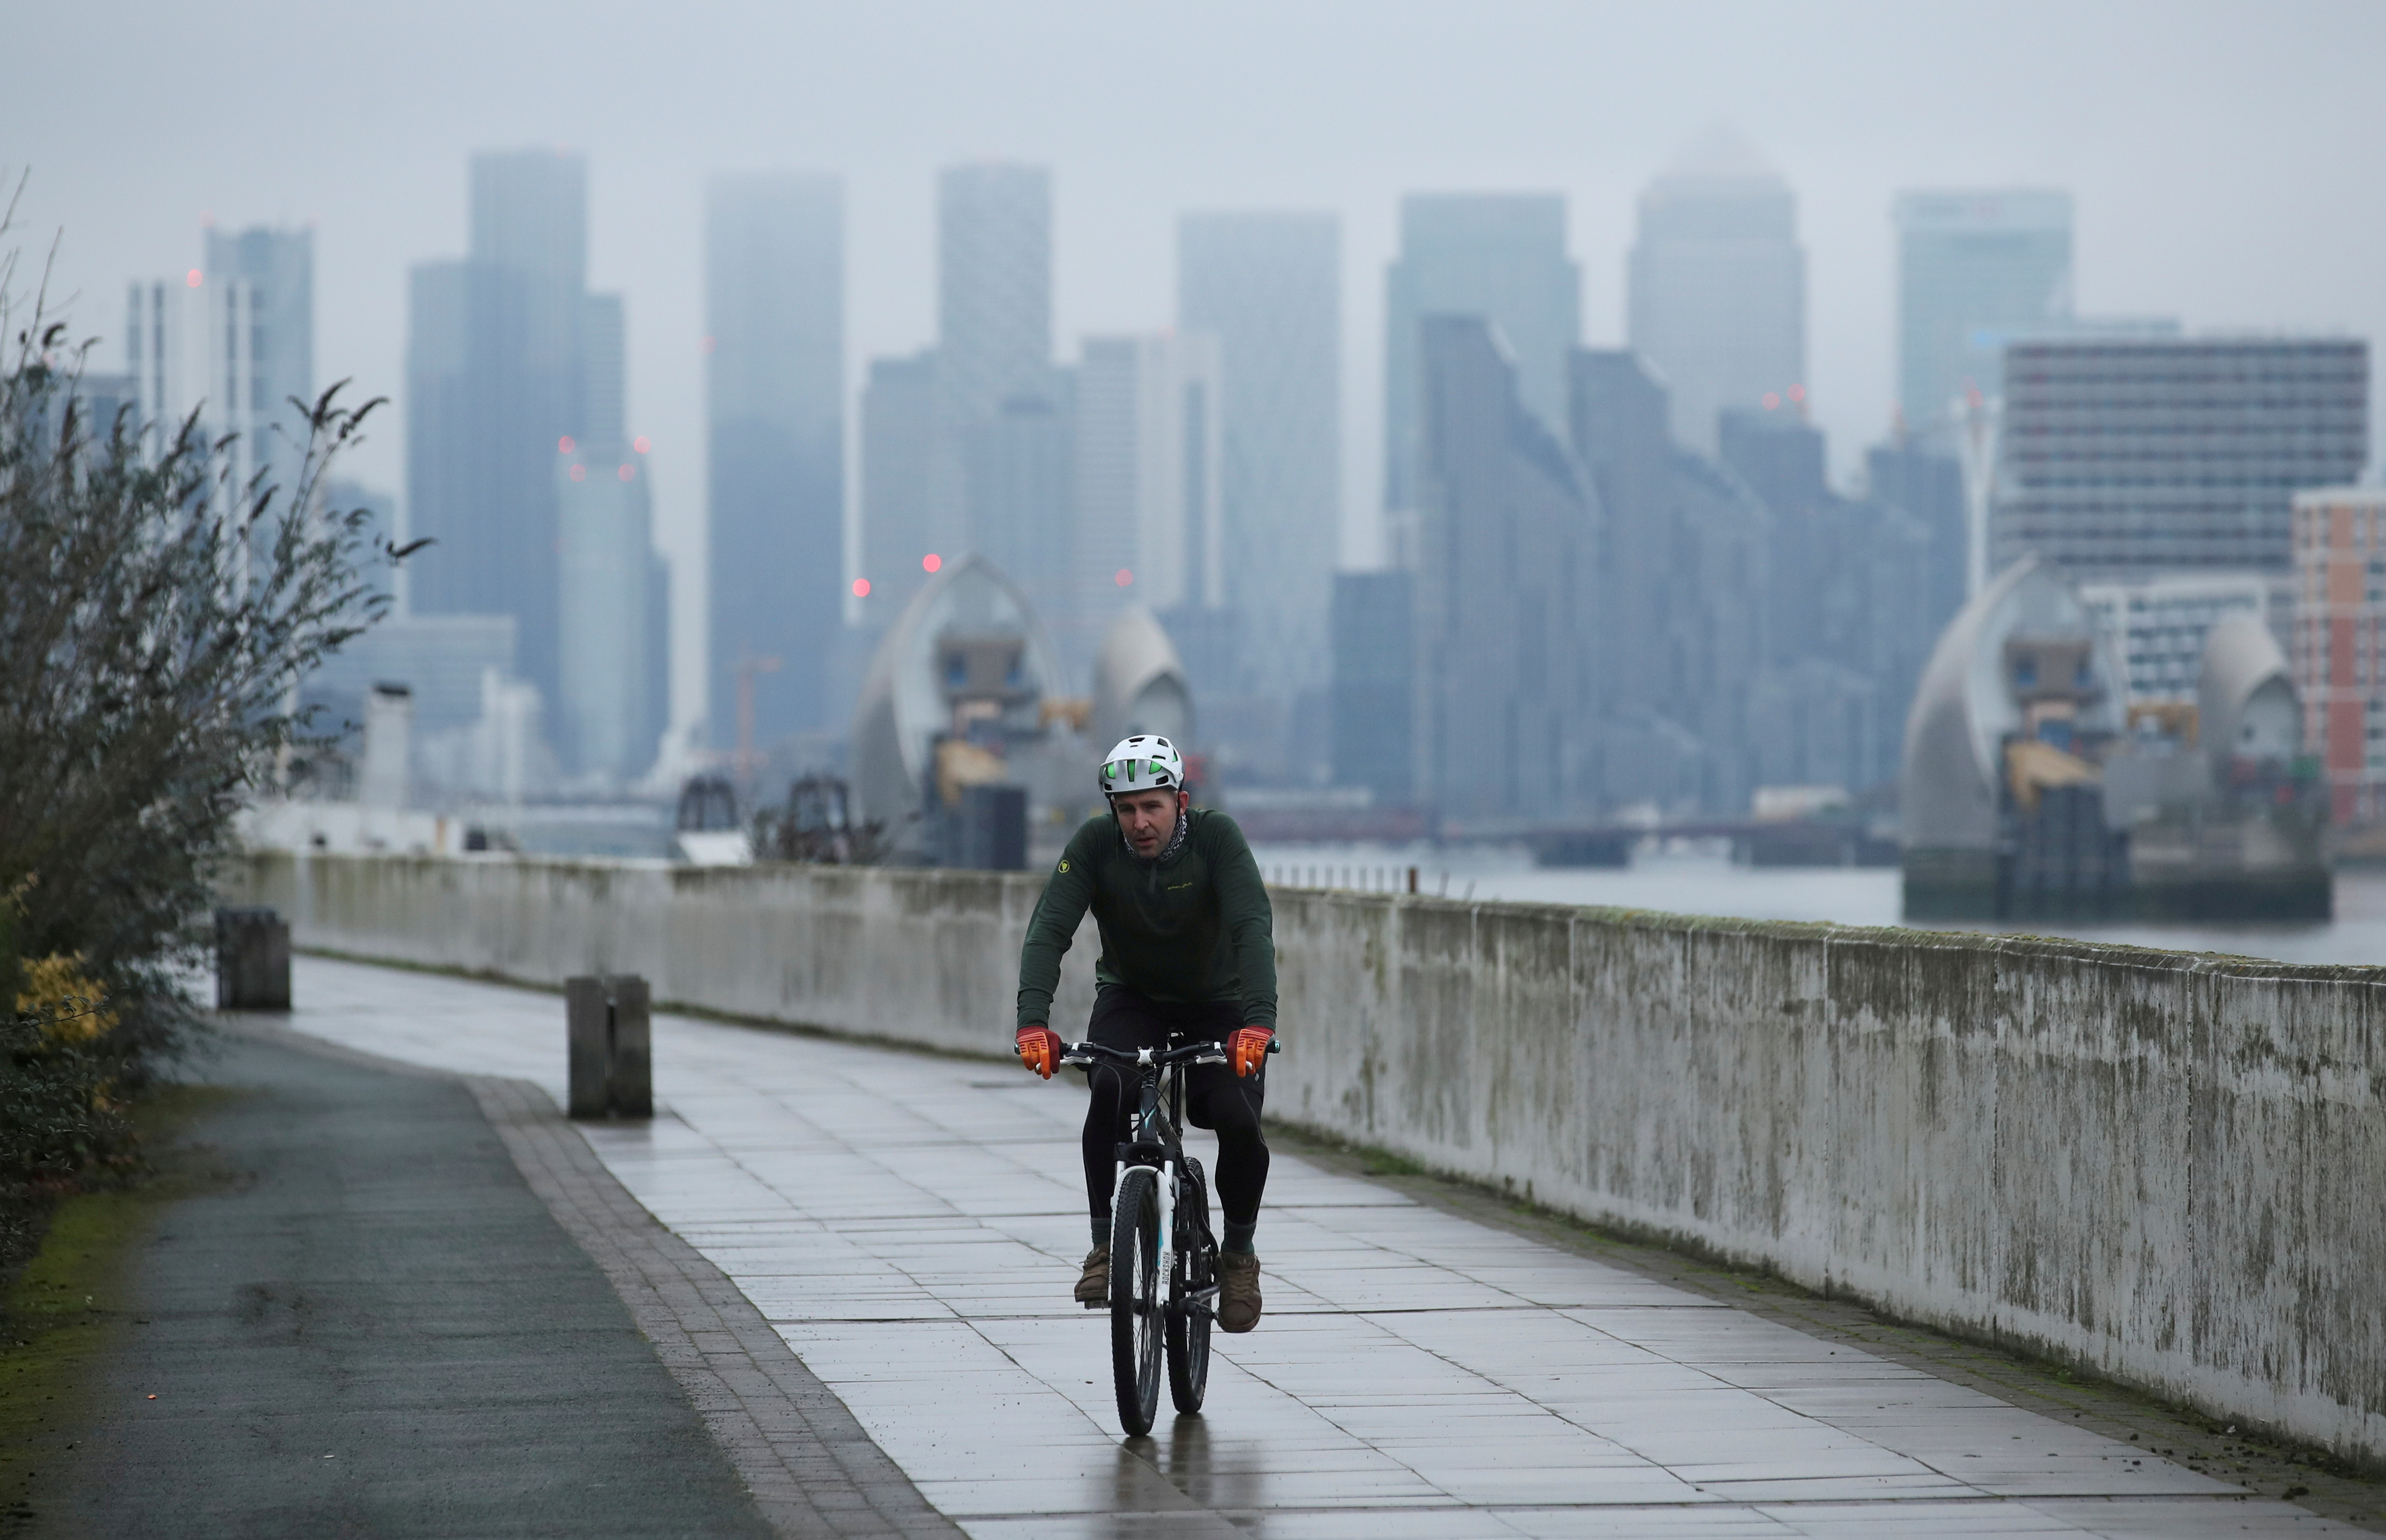 Buildings are seen in the Canary Wharf business district, as a man cycles along a path, in London, Britain January 27, 2021. REUTERS/Peter Cziborra